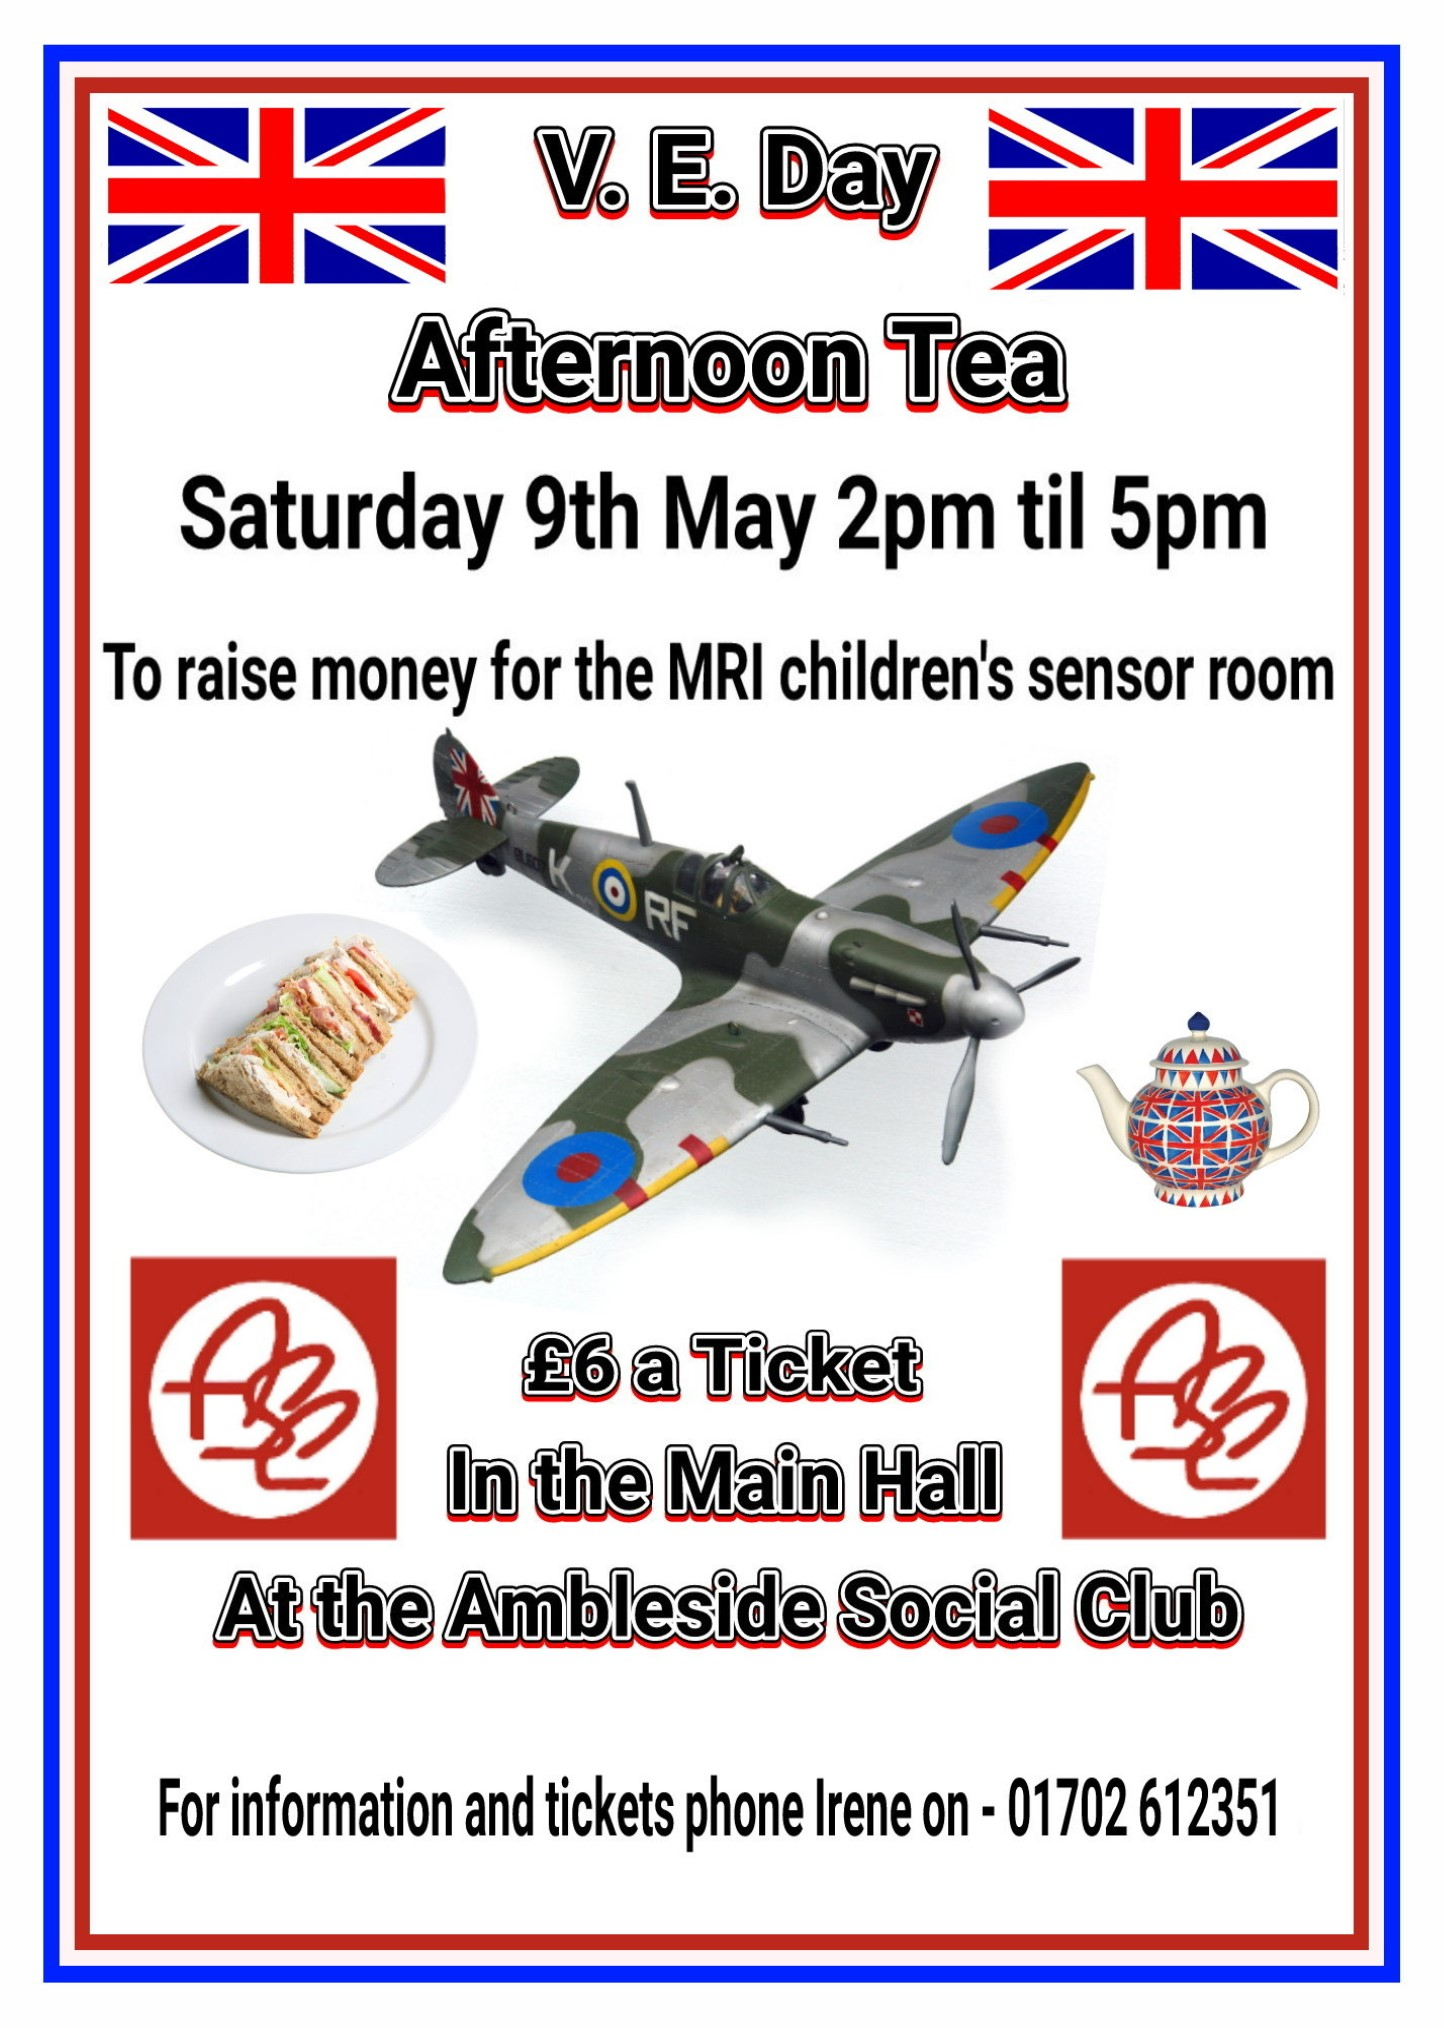 VE DAY afternoon tea & cabaret